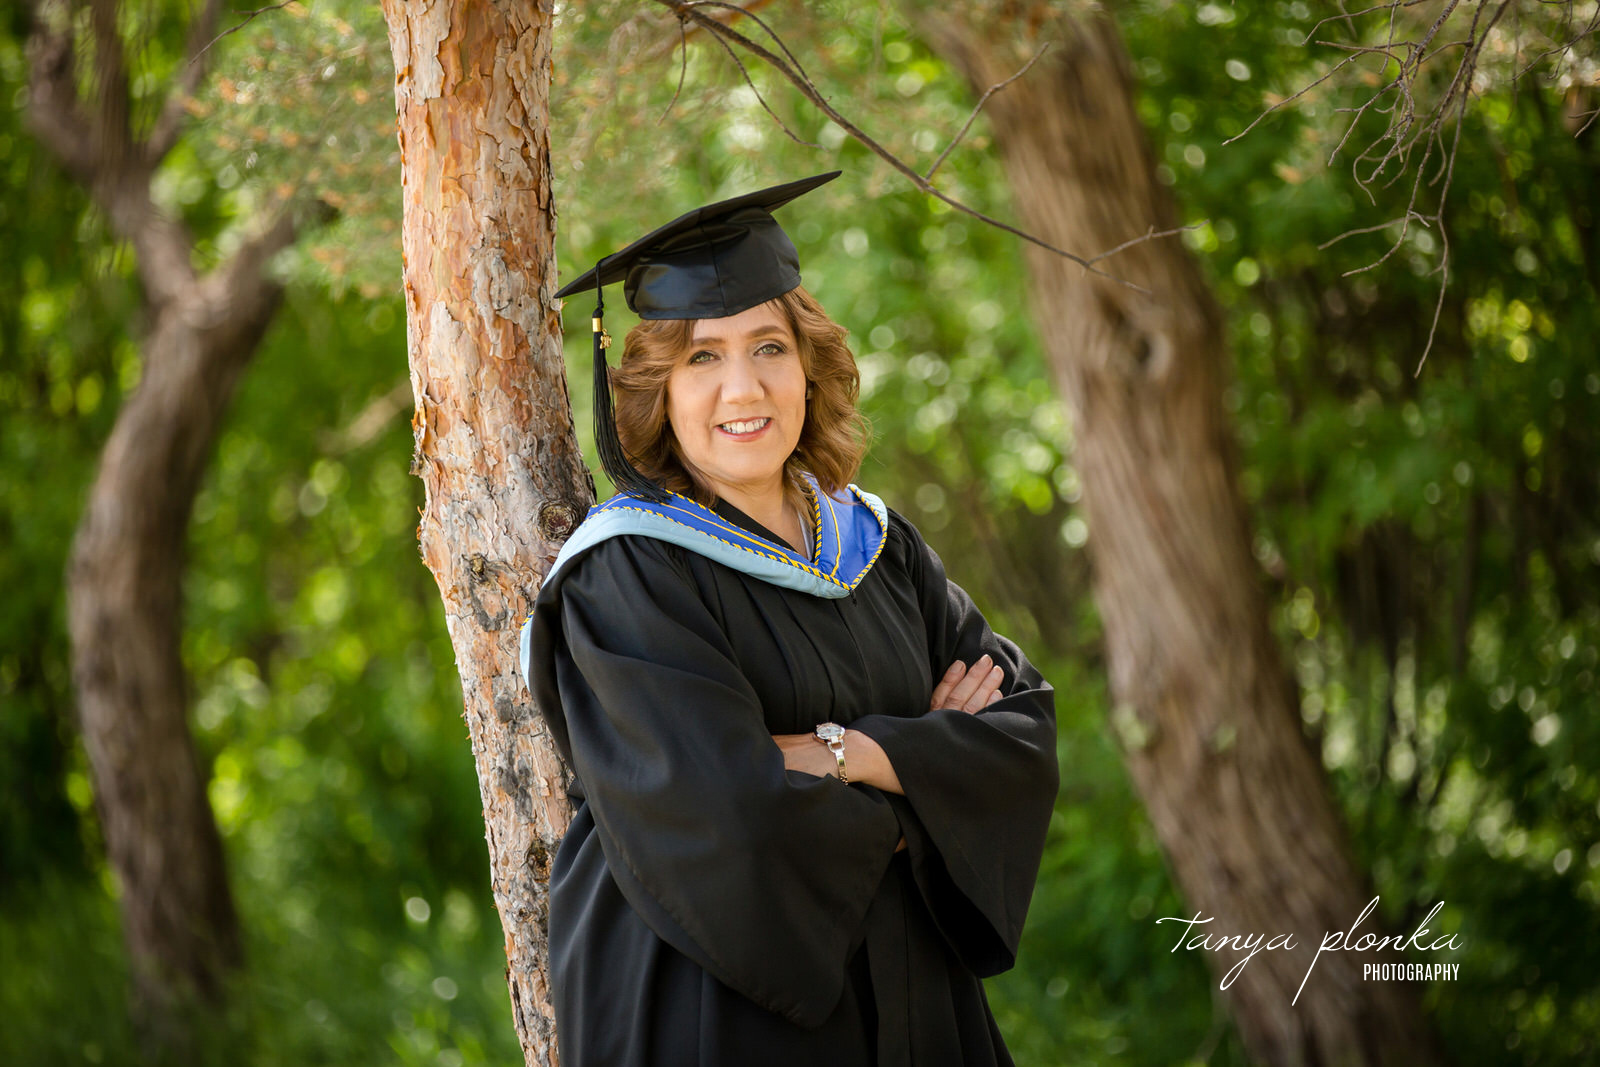 woman in University of Lethbridge cap and gown leans against tree